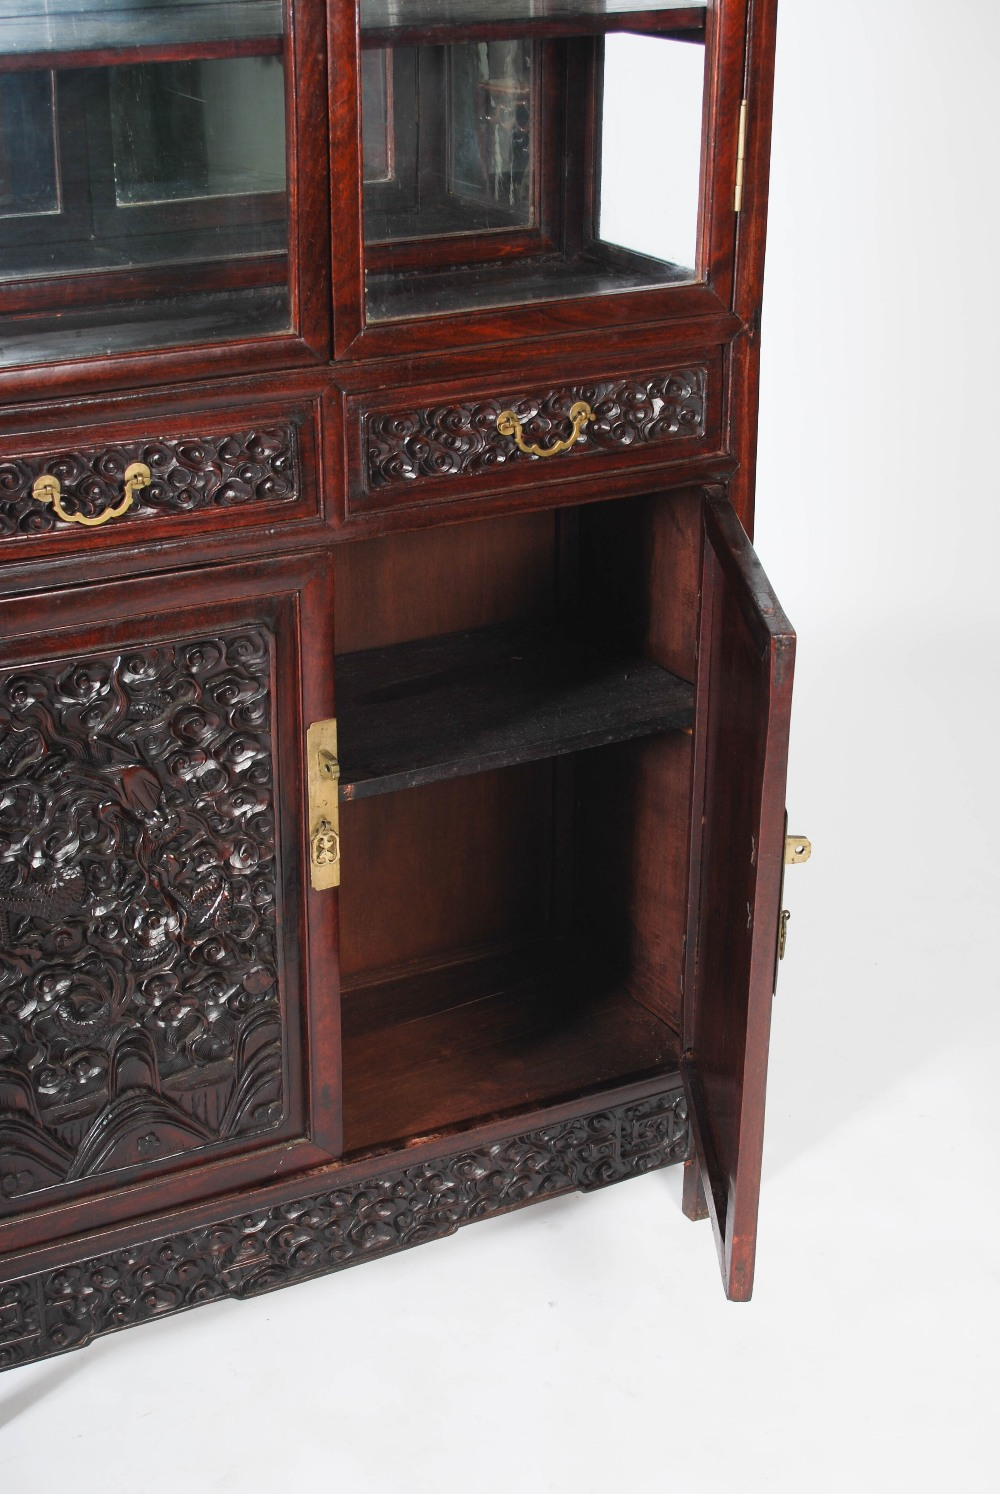 Lot 53 - A Chinese dark wood mirror back display cabinet, the upper section with a pair of glazed cupboard